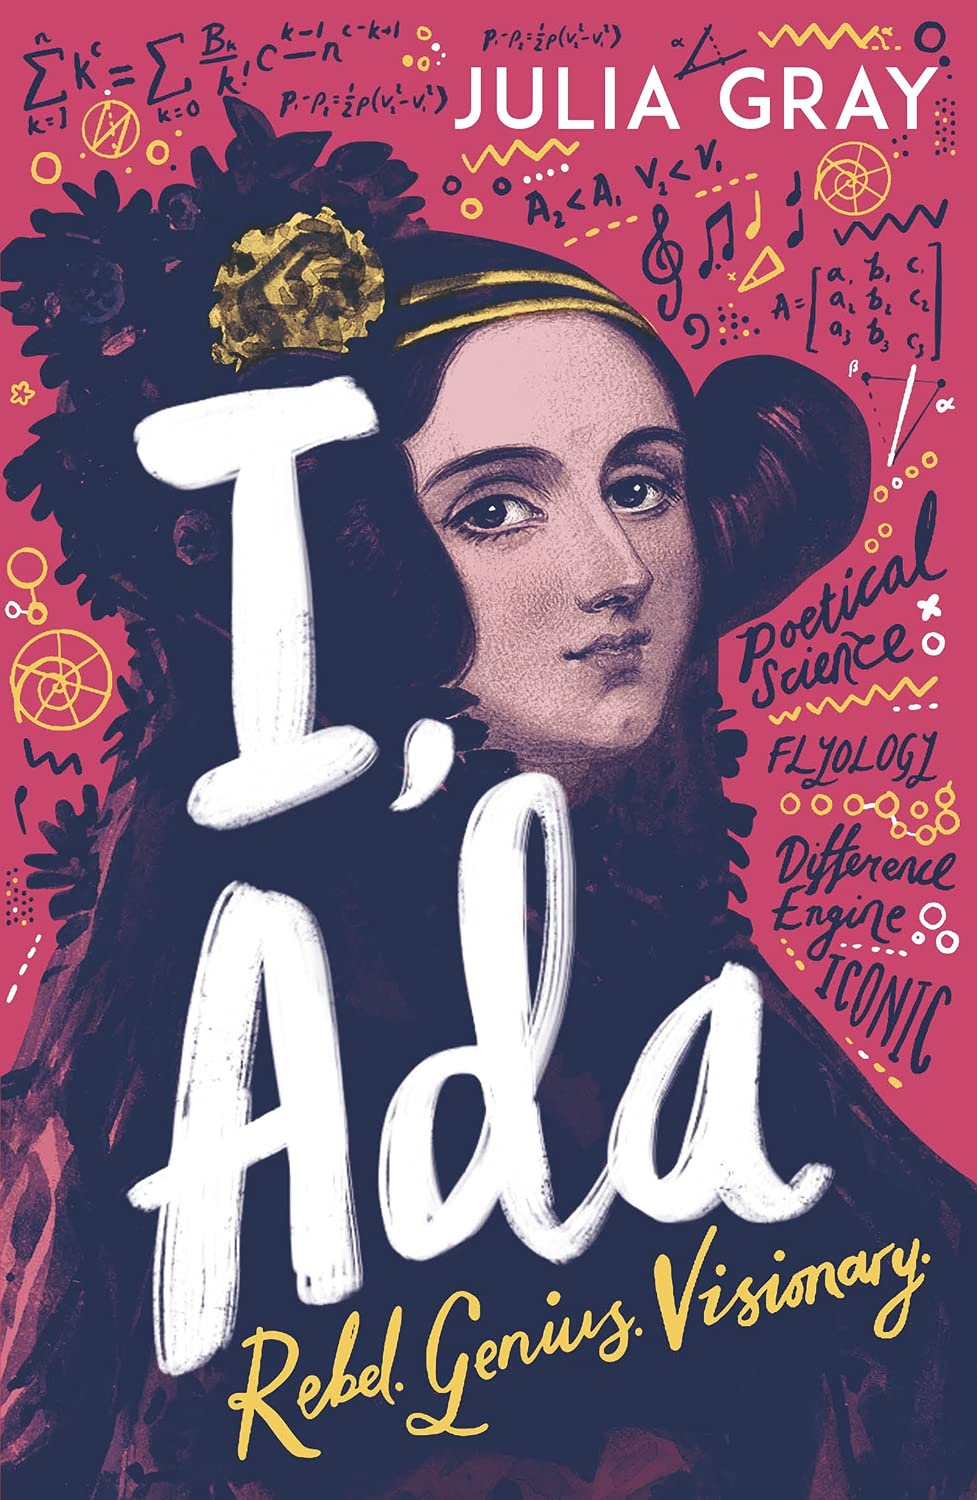 The Trains Now Departed, front cover image